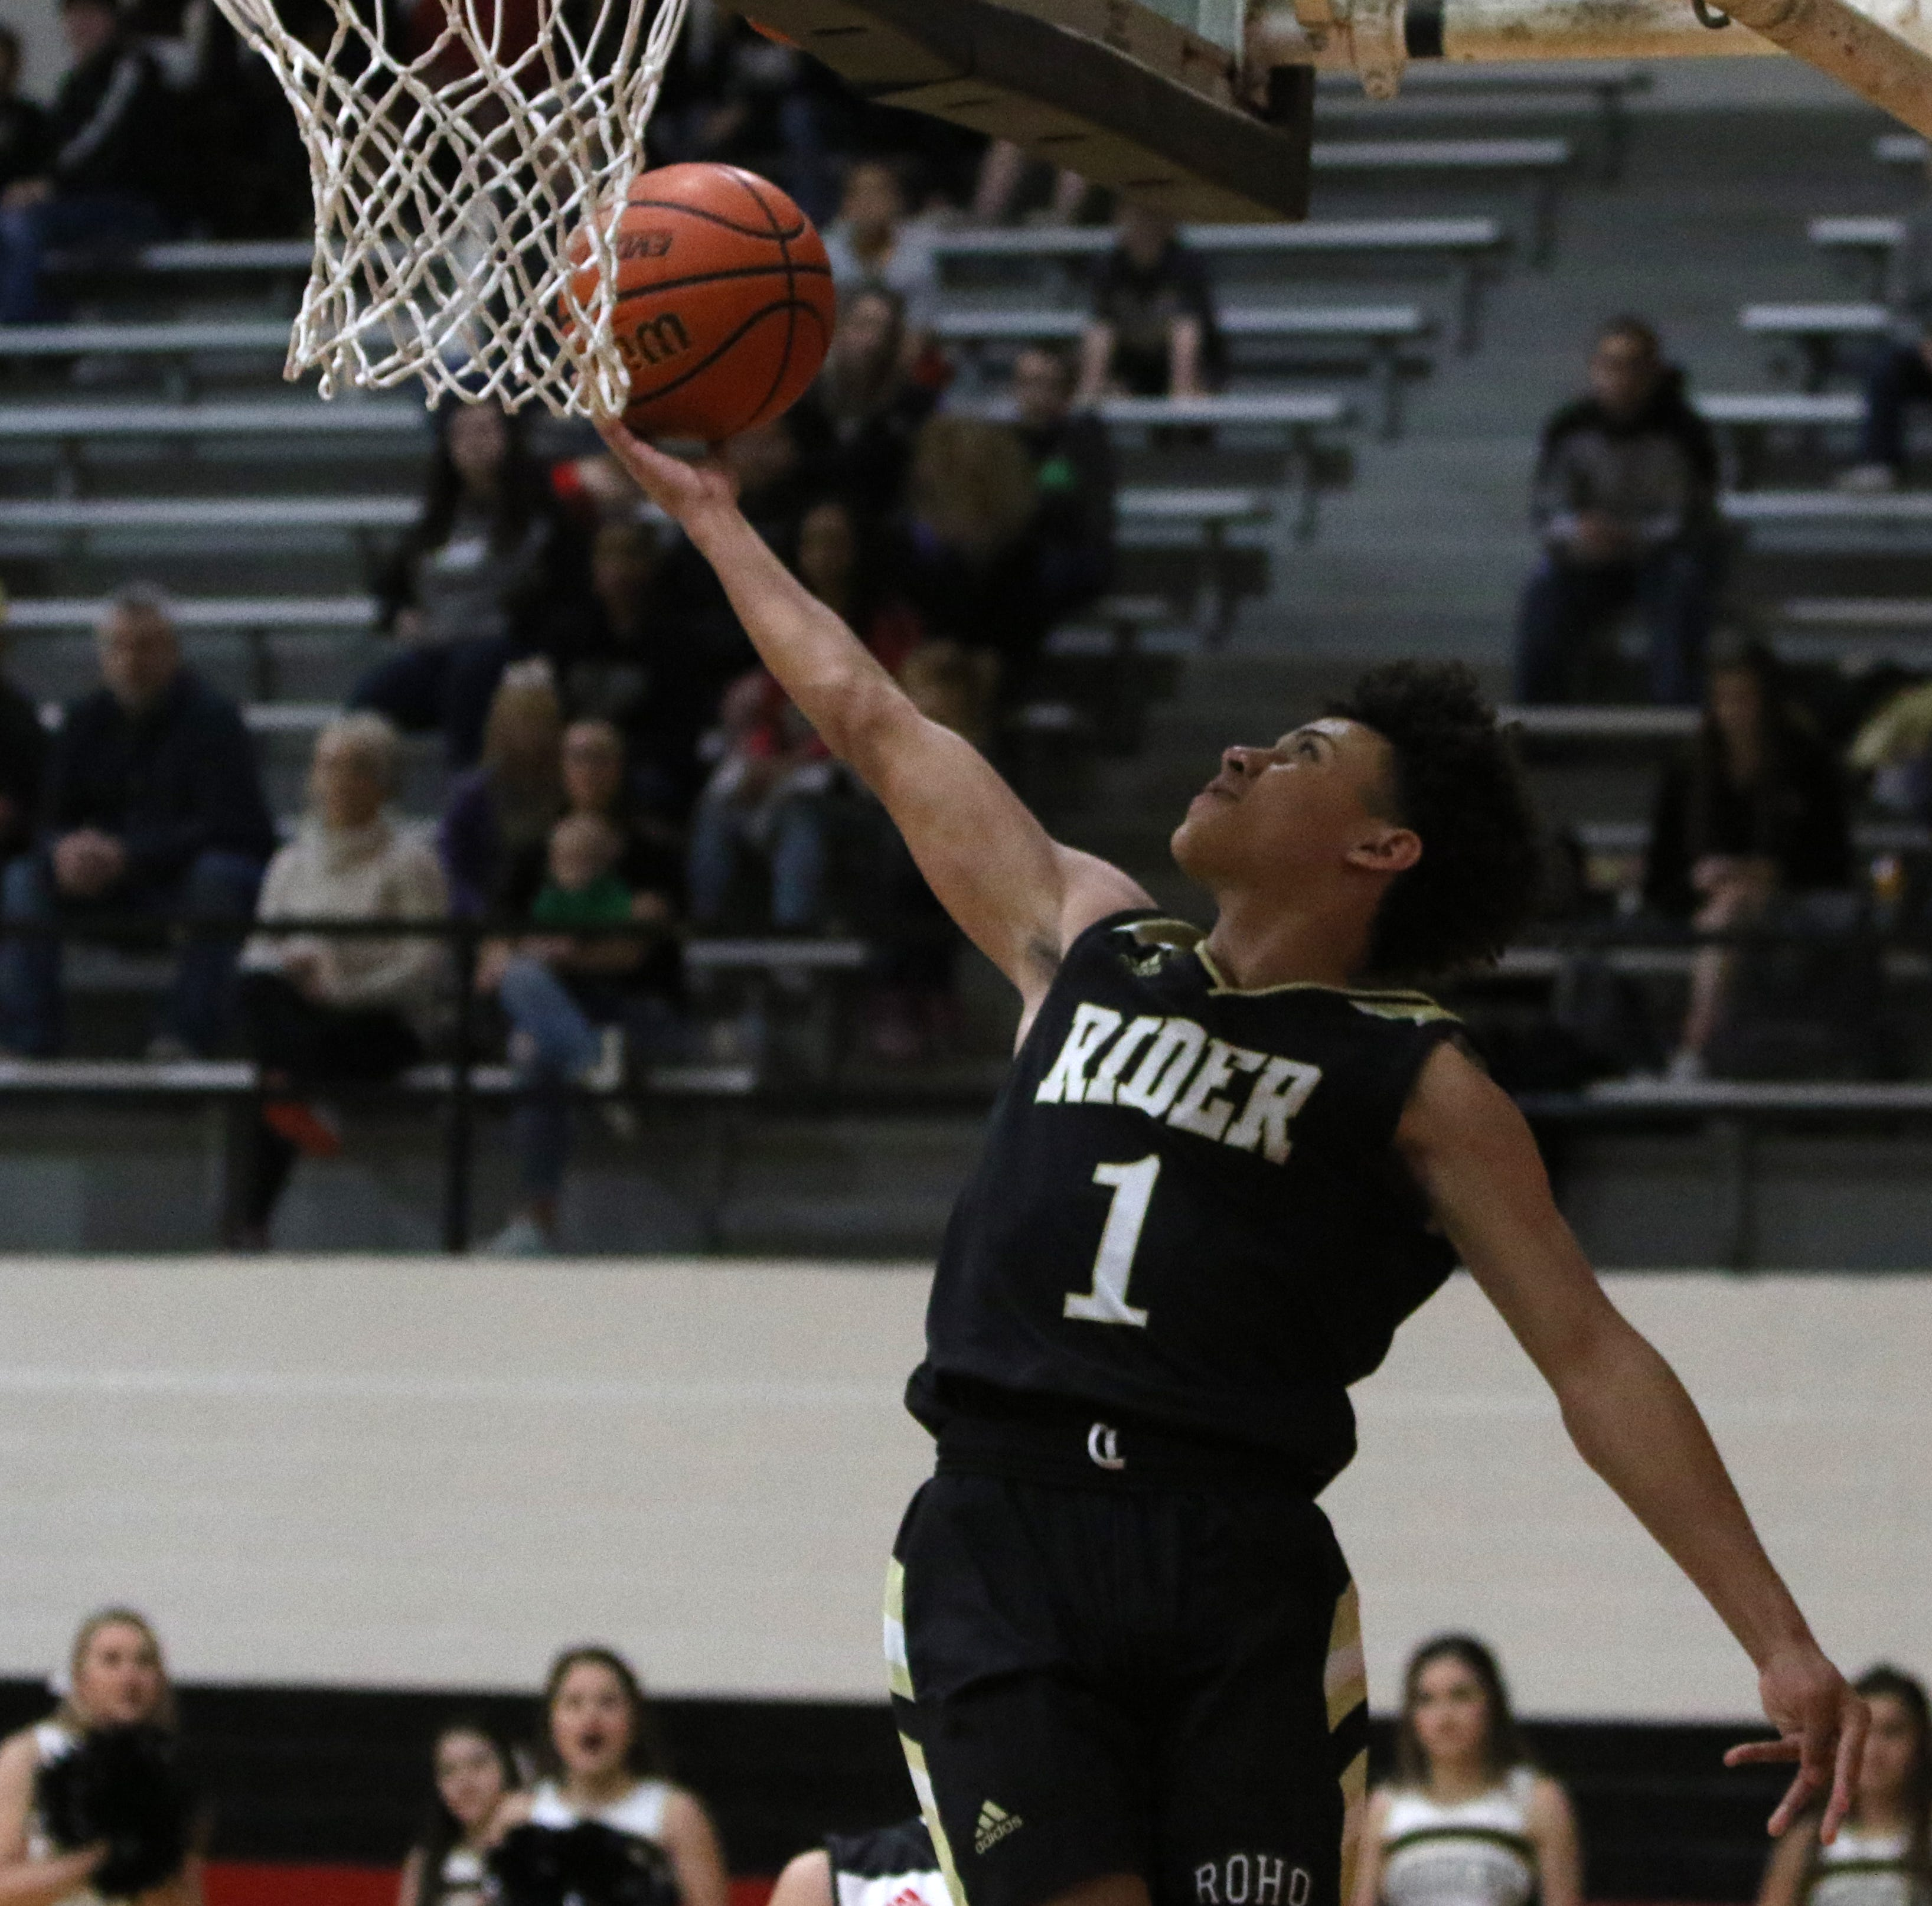 Boys basketball regional forecast: Hard to pick against the favorites